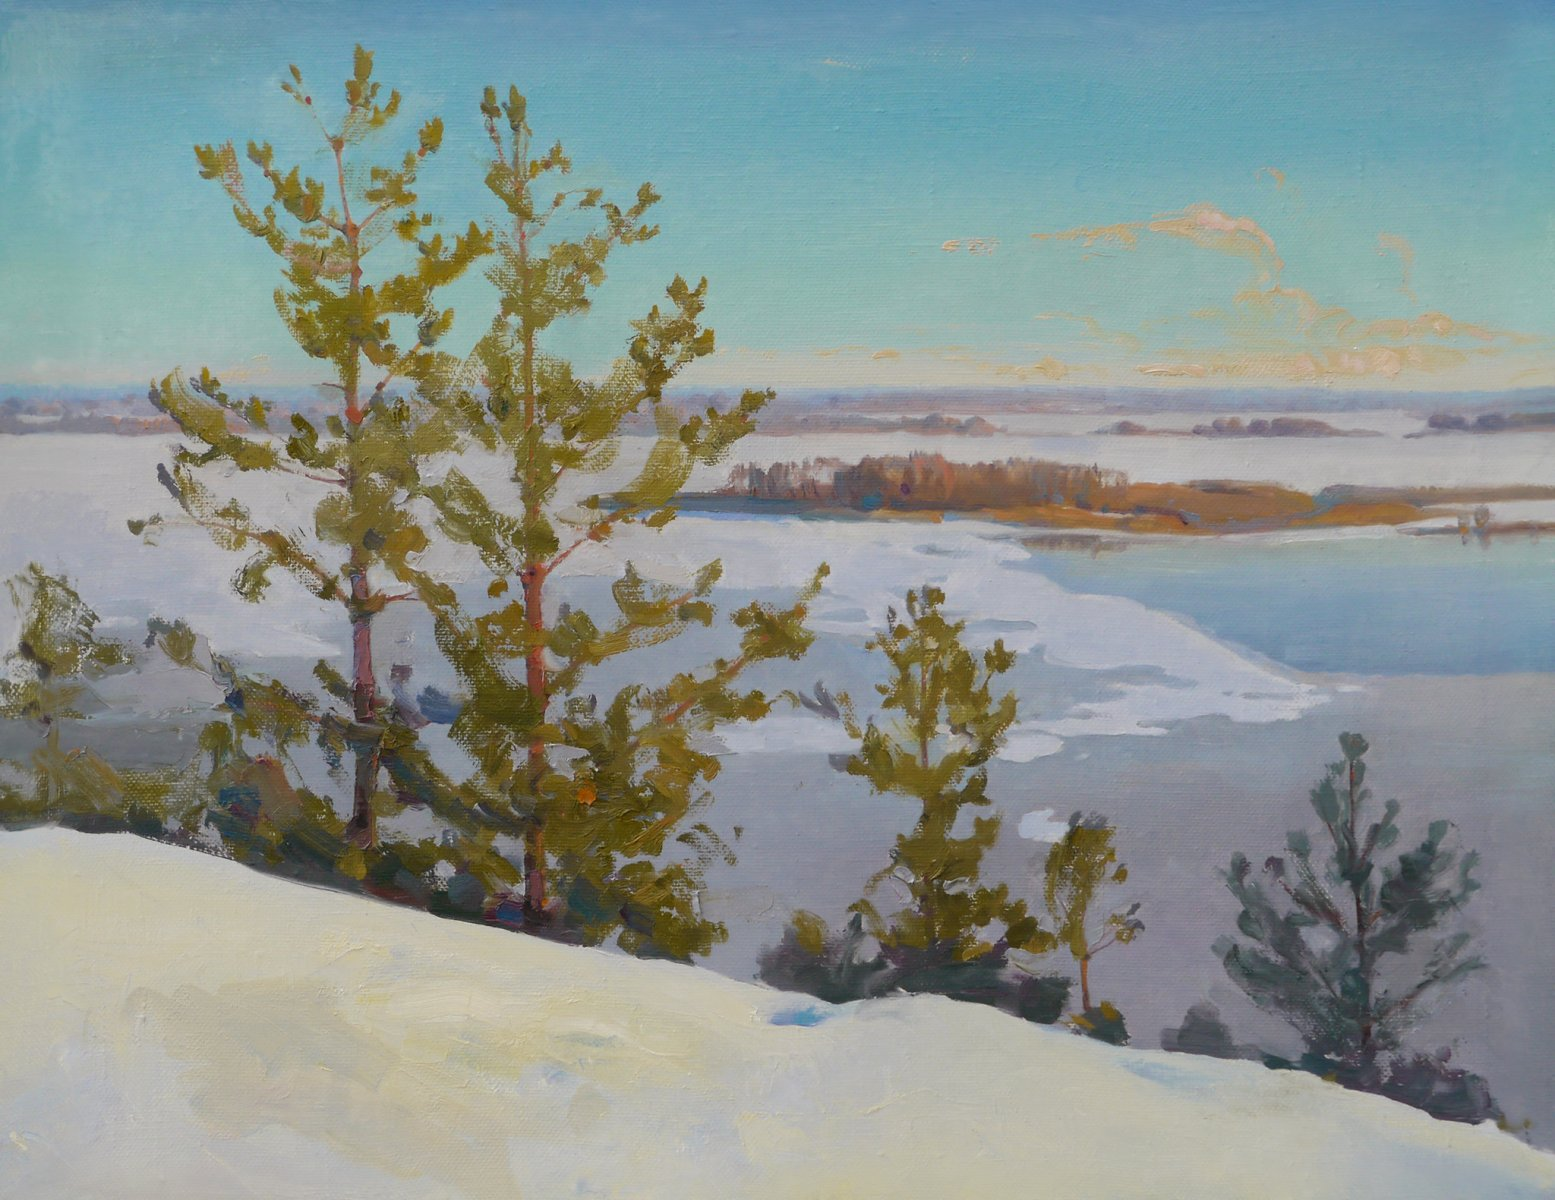 Pines over Dnieper - Victor Onyshchenko